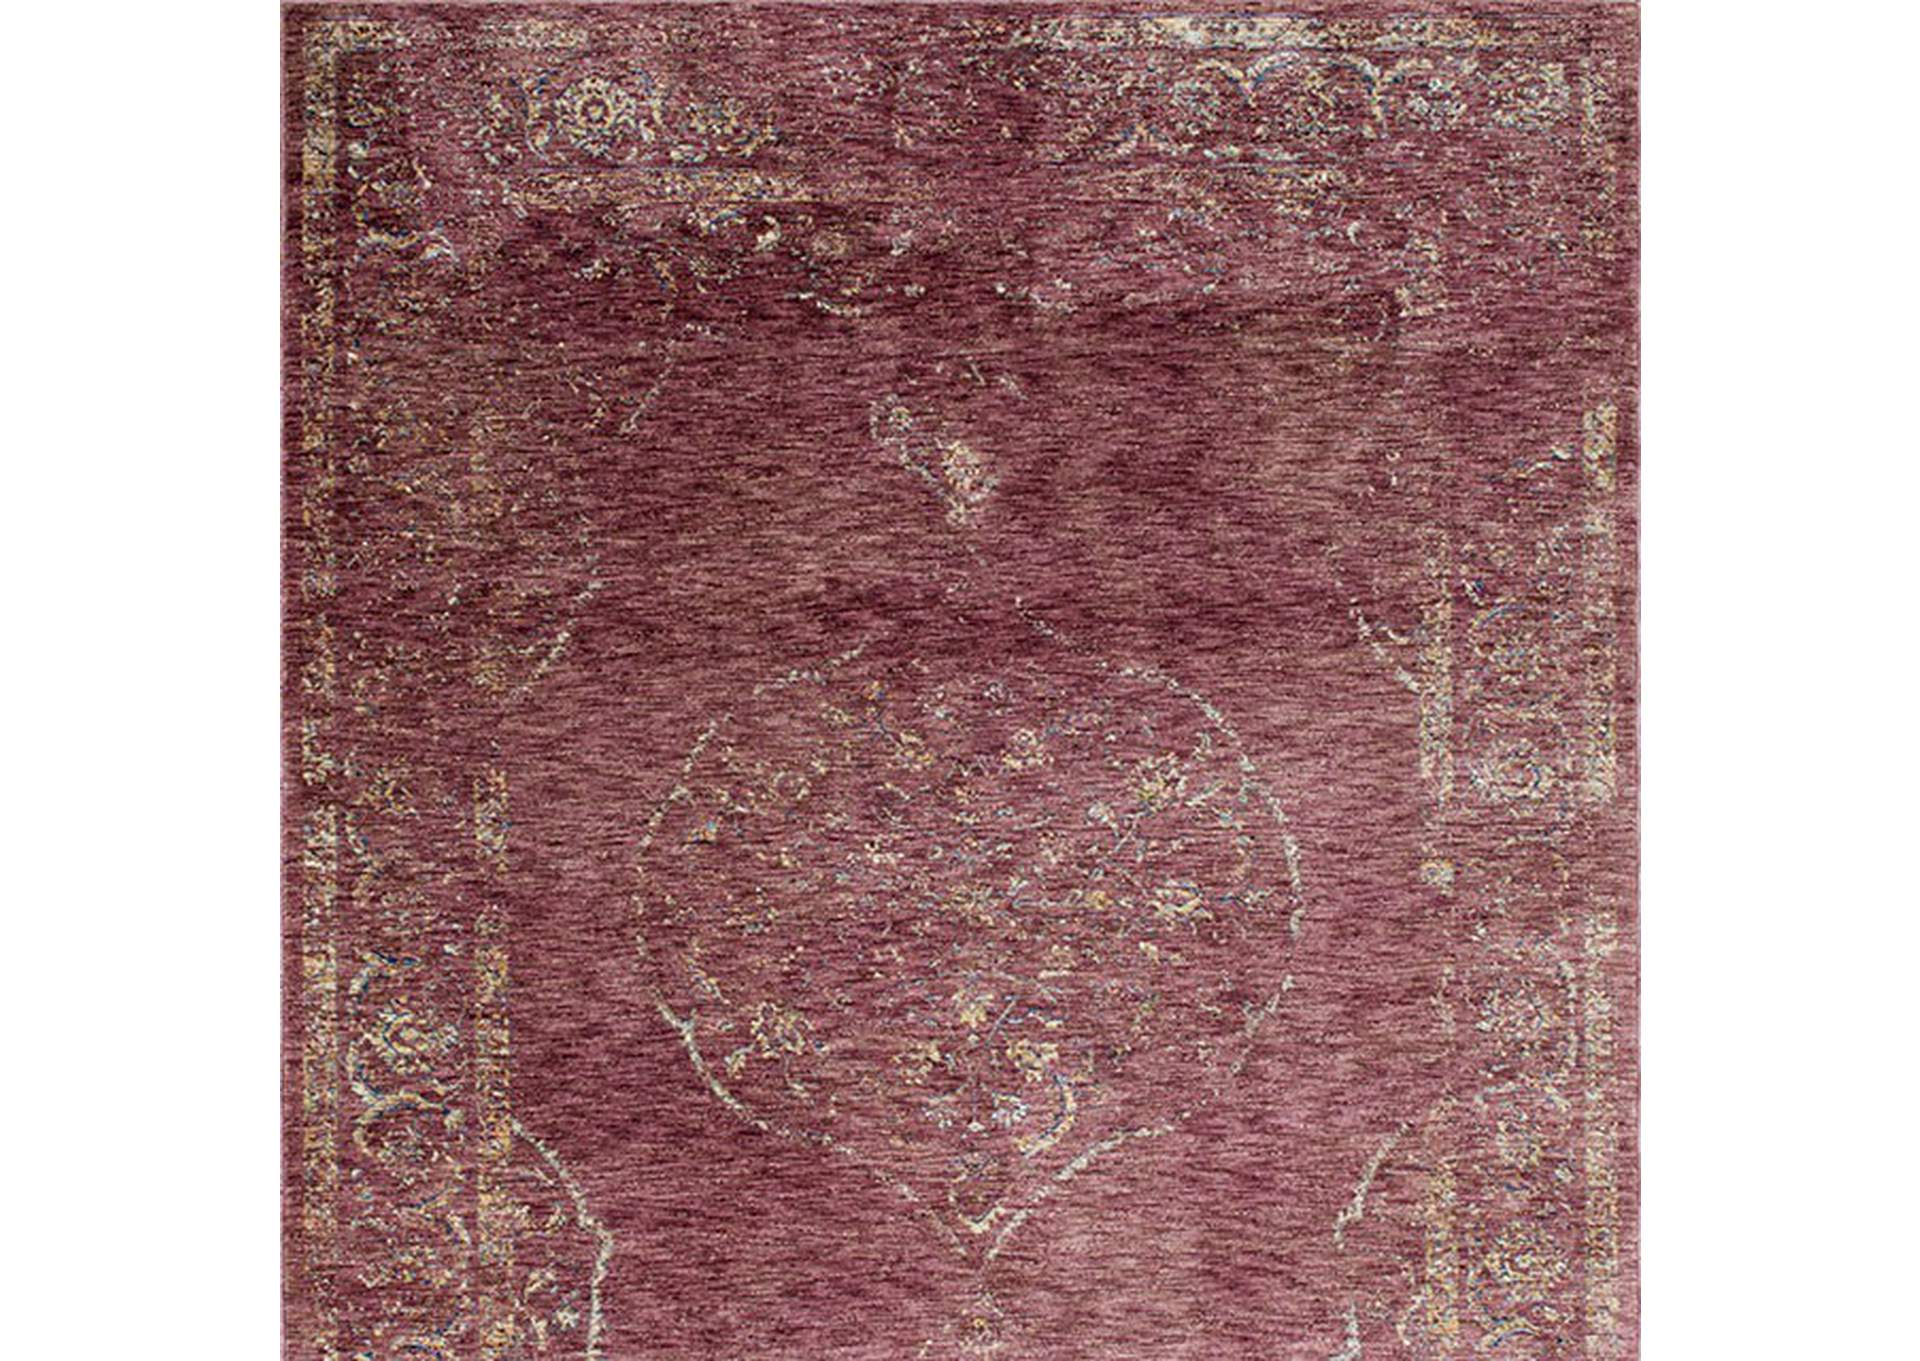 Payas Red Area Rug,Furniture of America